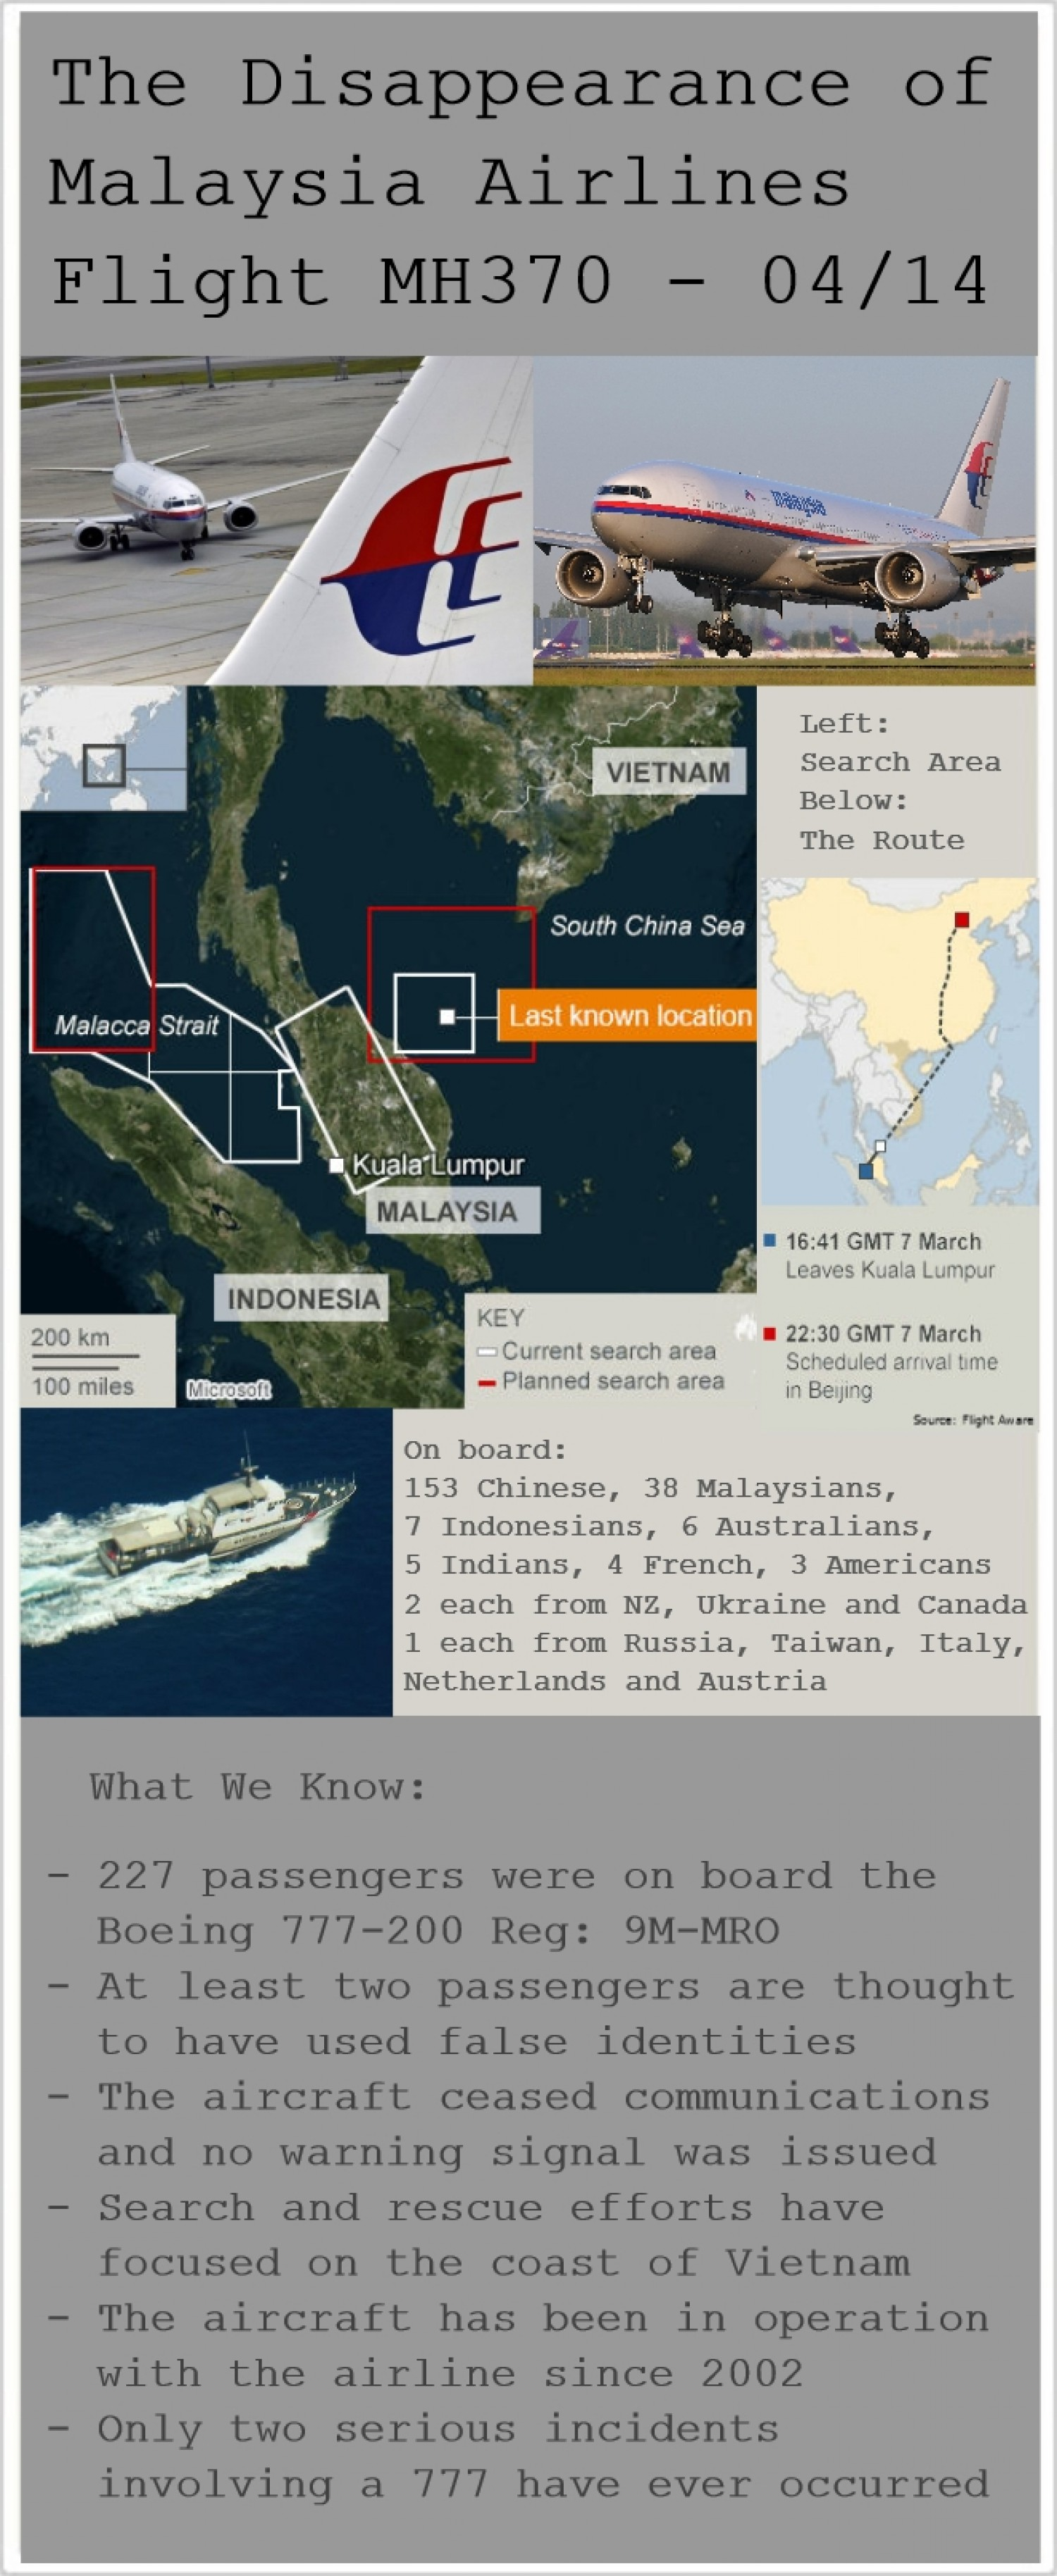 02 the-disappearance-of-malaysia-airlines-flight-mh370_531dedaa9fa30_w1500